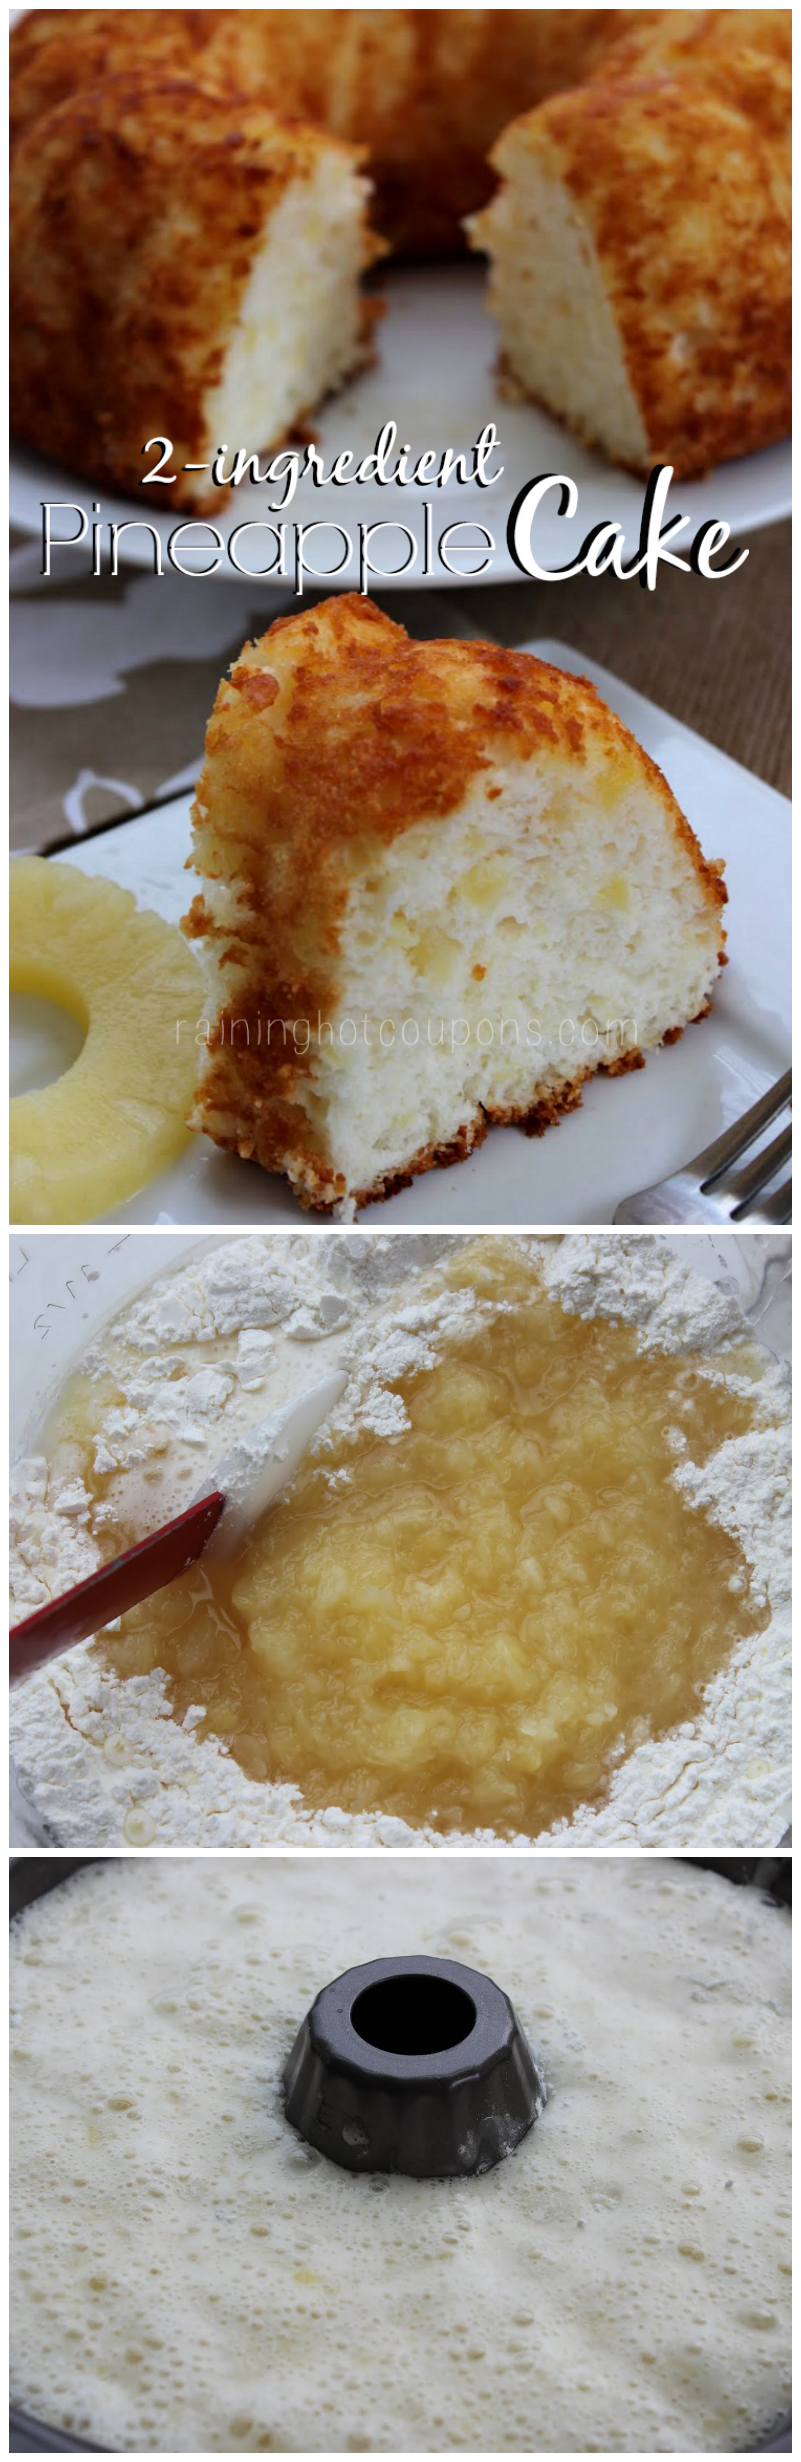 pineapple cake collage.png